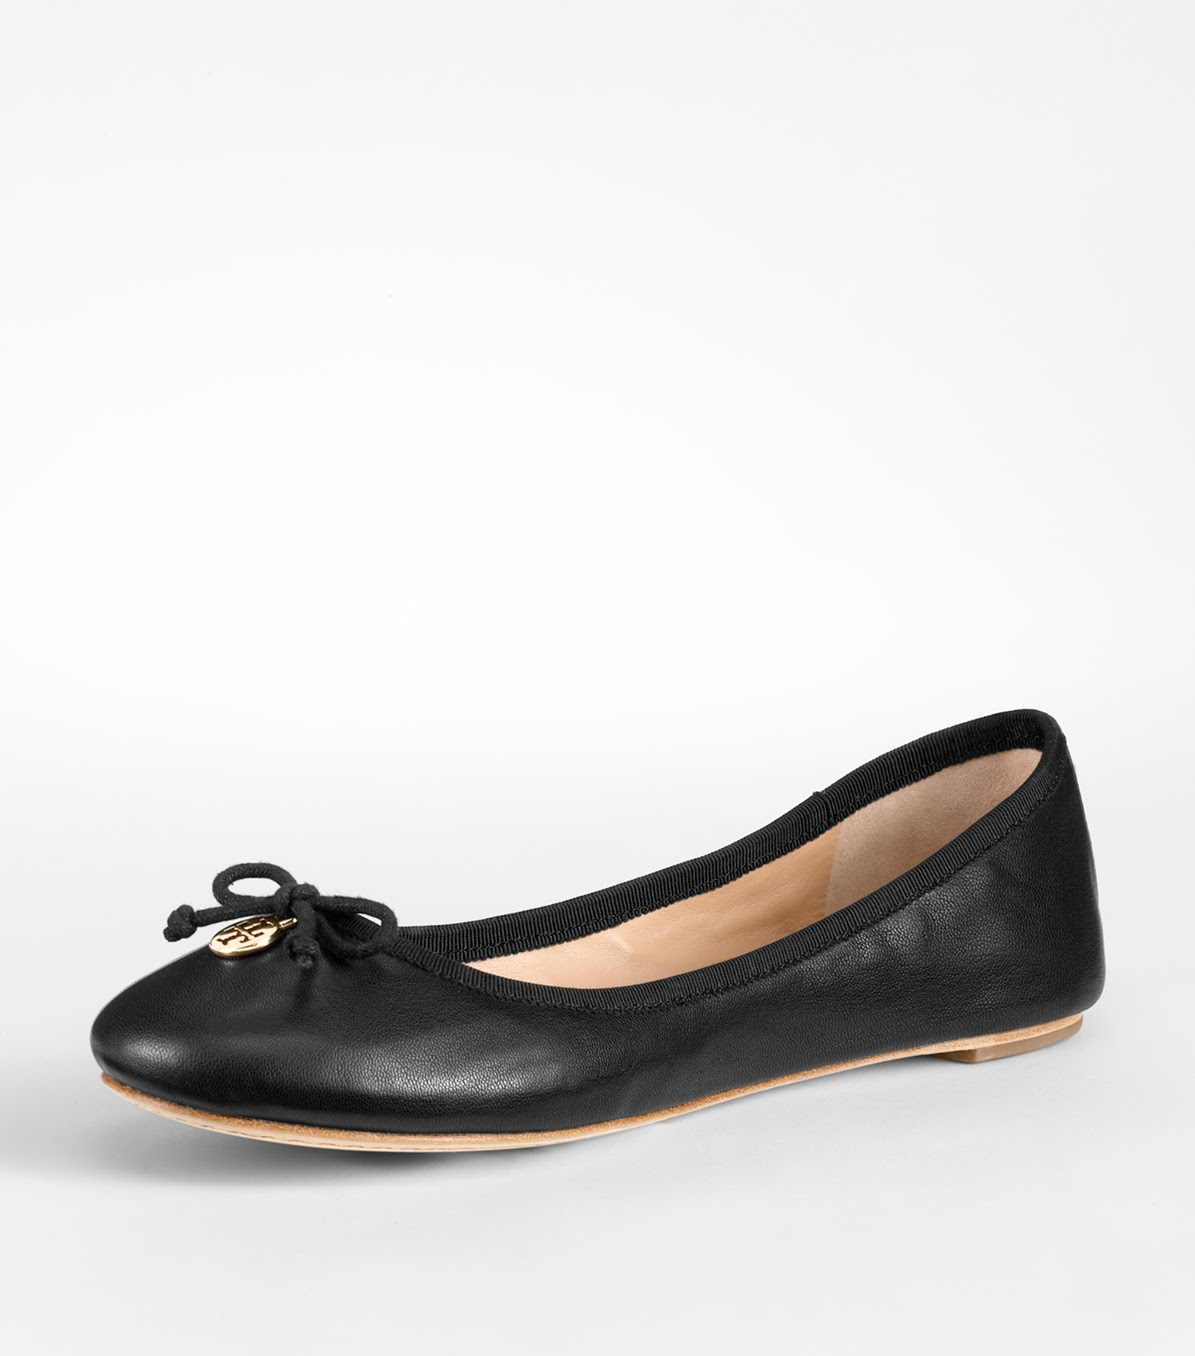 eac59e4a8d7e Tory Burch studied an actual ballet slipper when she designed this wardrobe  staple. So the soft leather